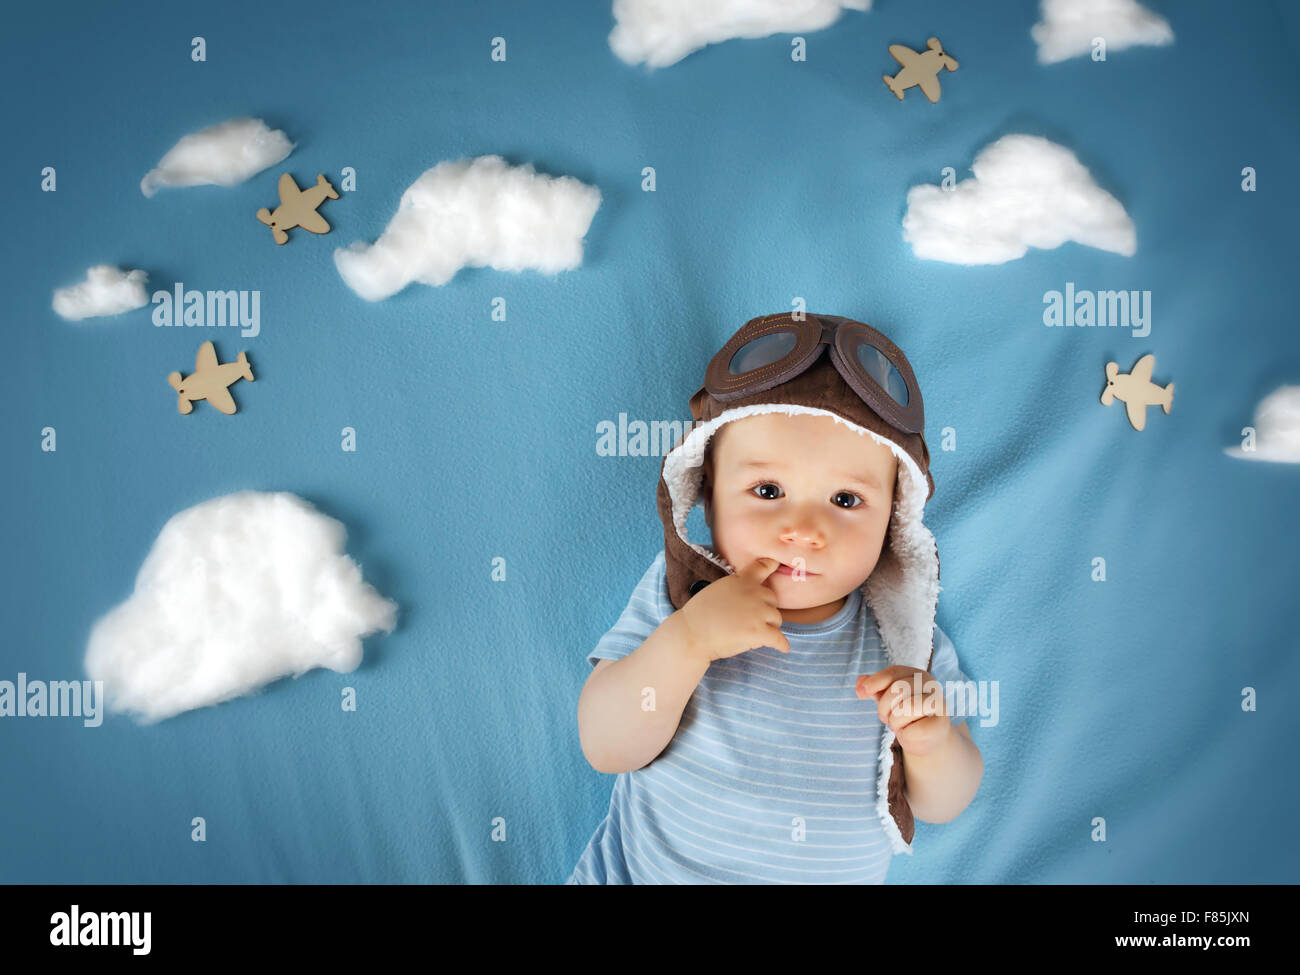 boy lying on blanket with white clouds - Stock Image